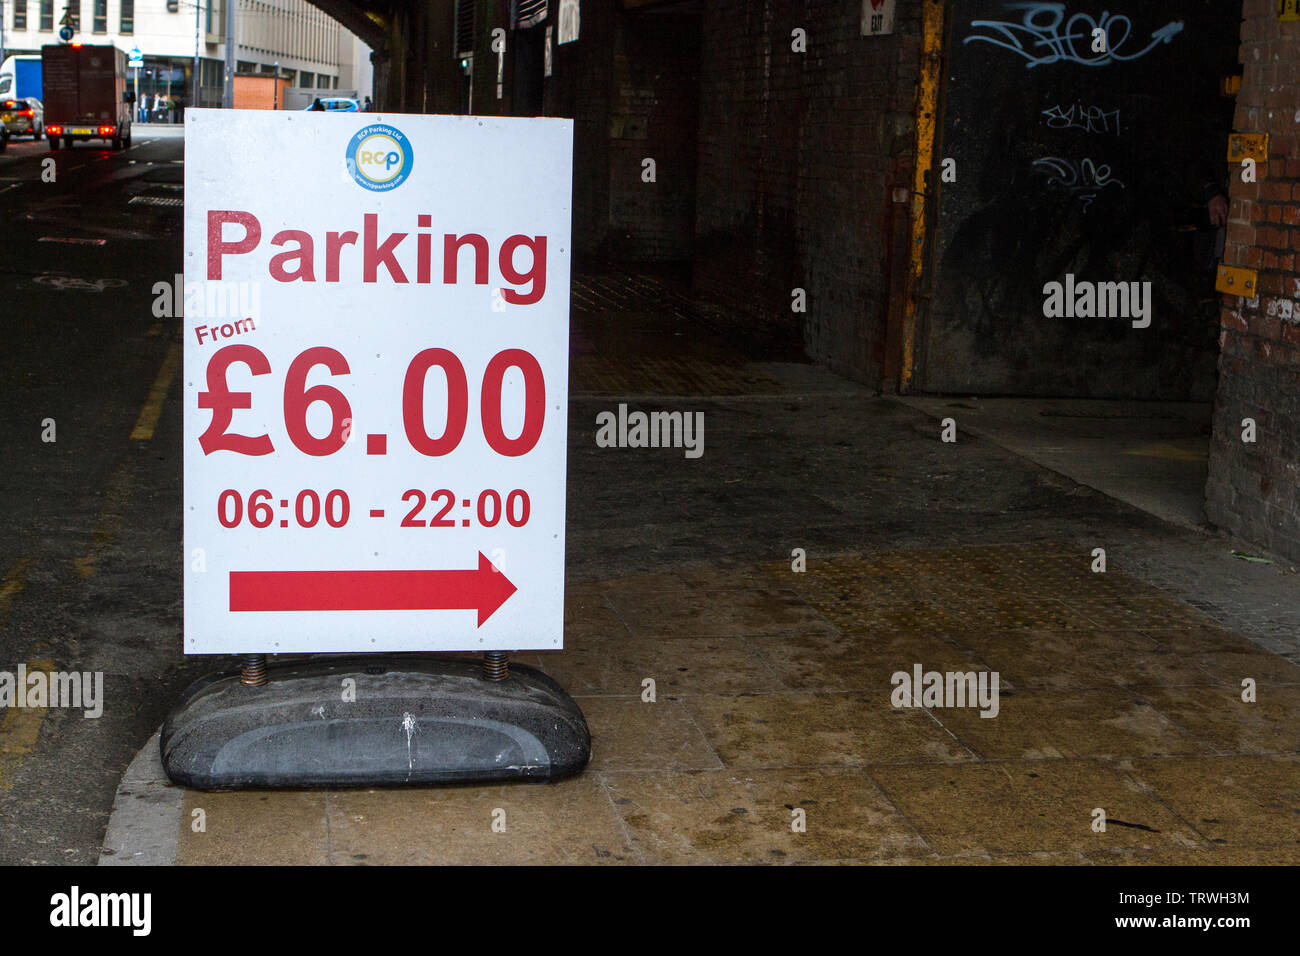 Manchester city centre car park charges sign - Stock Image